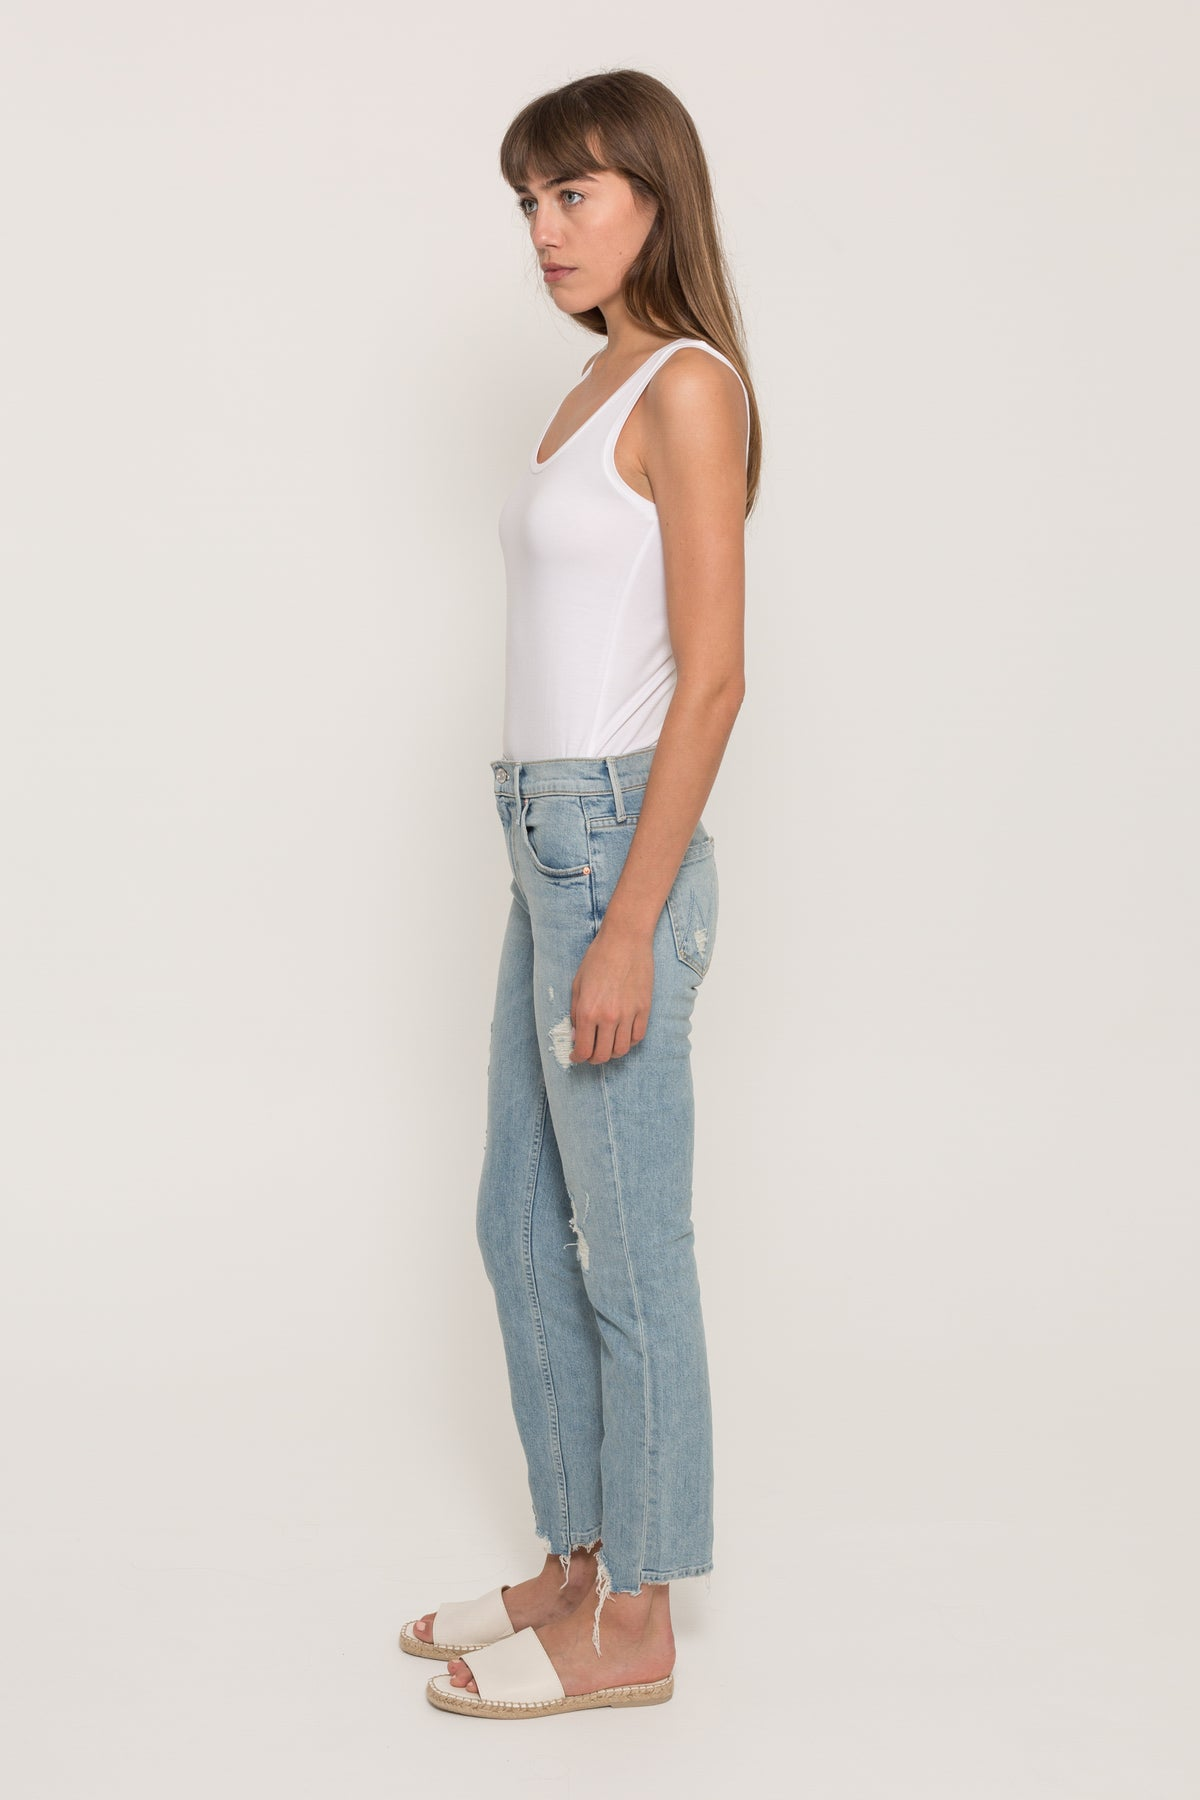 MOTHERFLIRT ANKLE FRAY JEANS23269